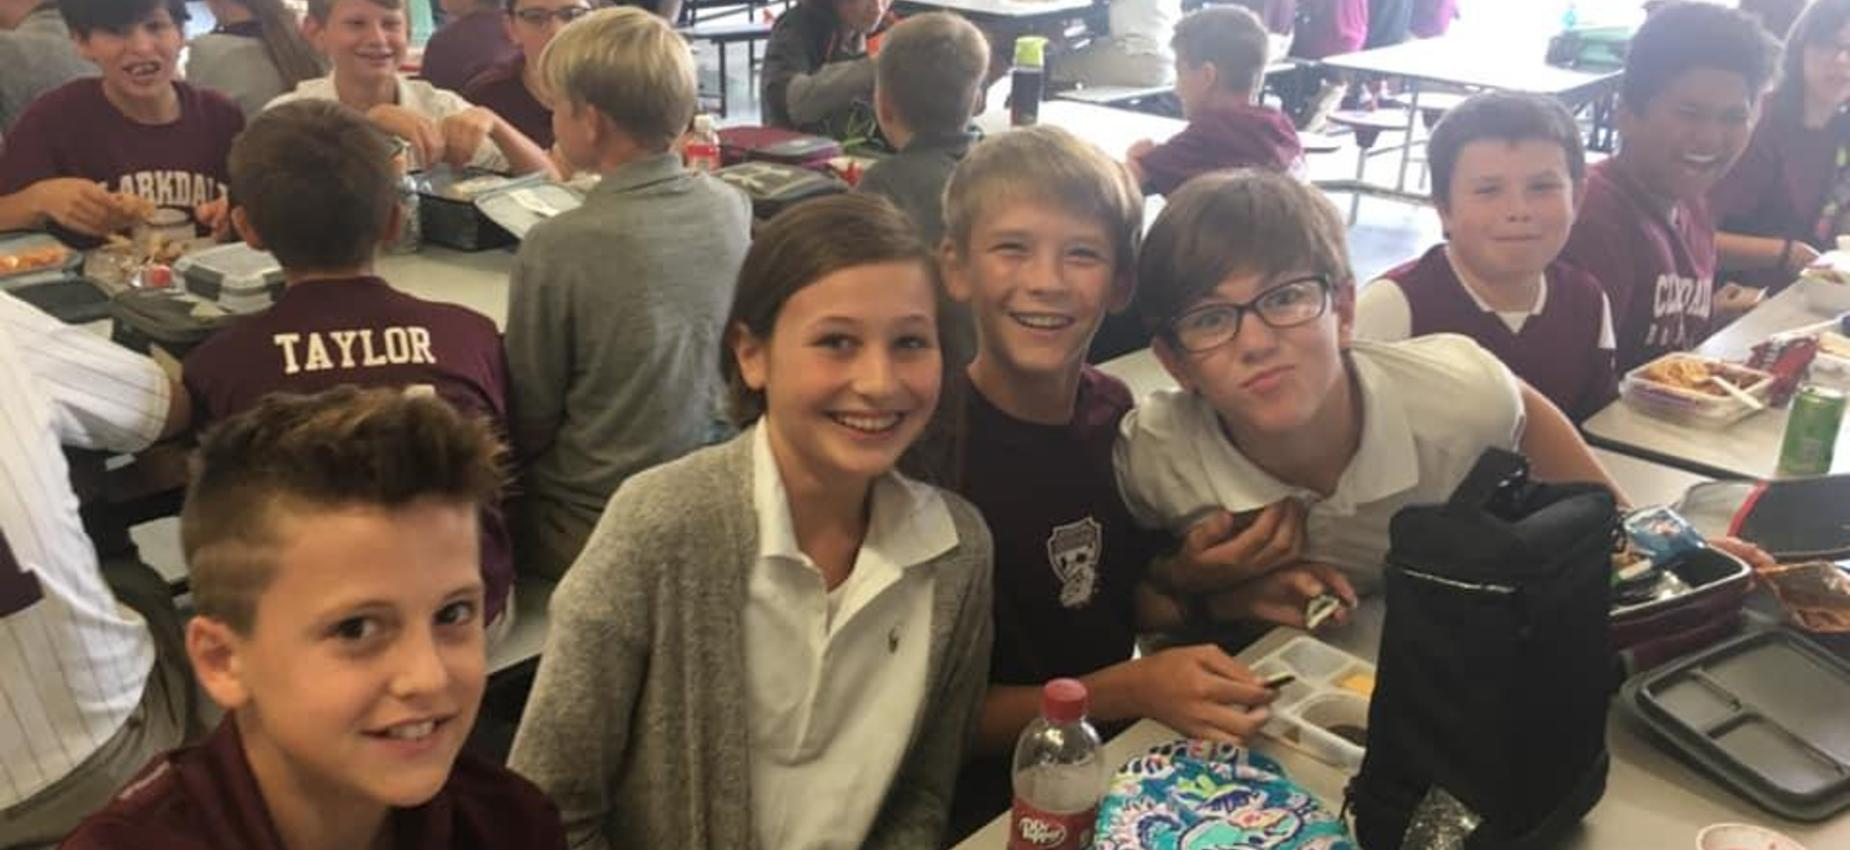 Students enjoy time with friends at lunch.